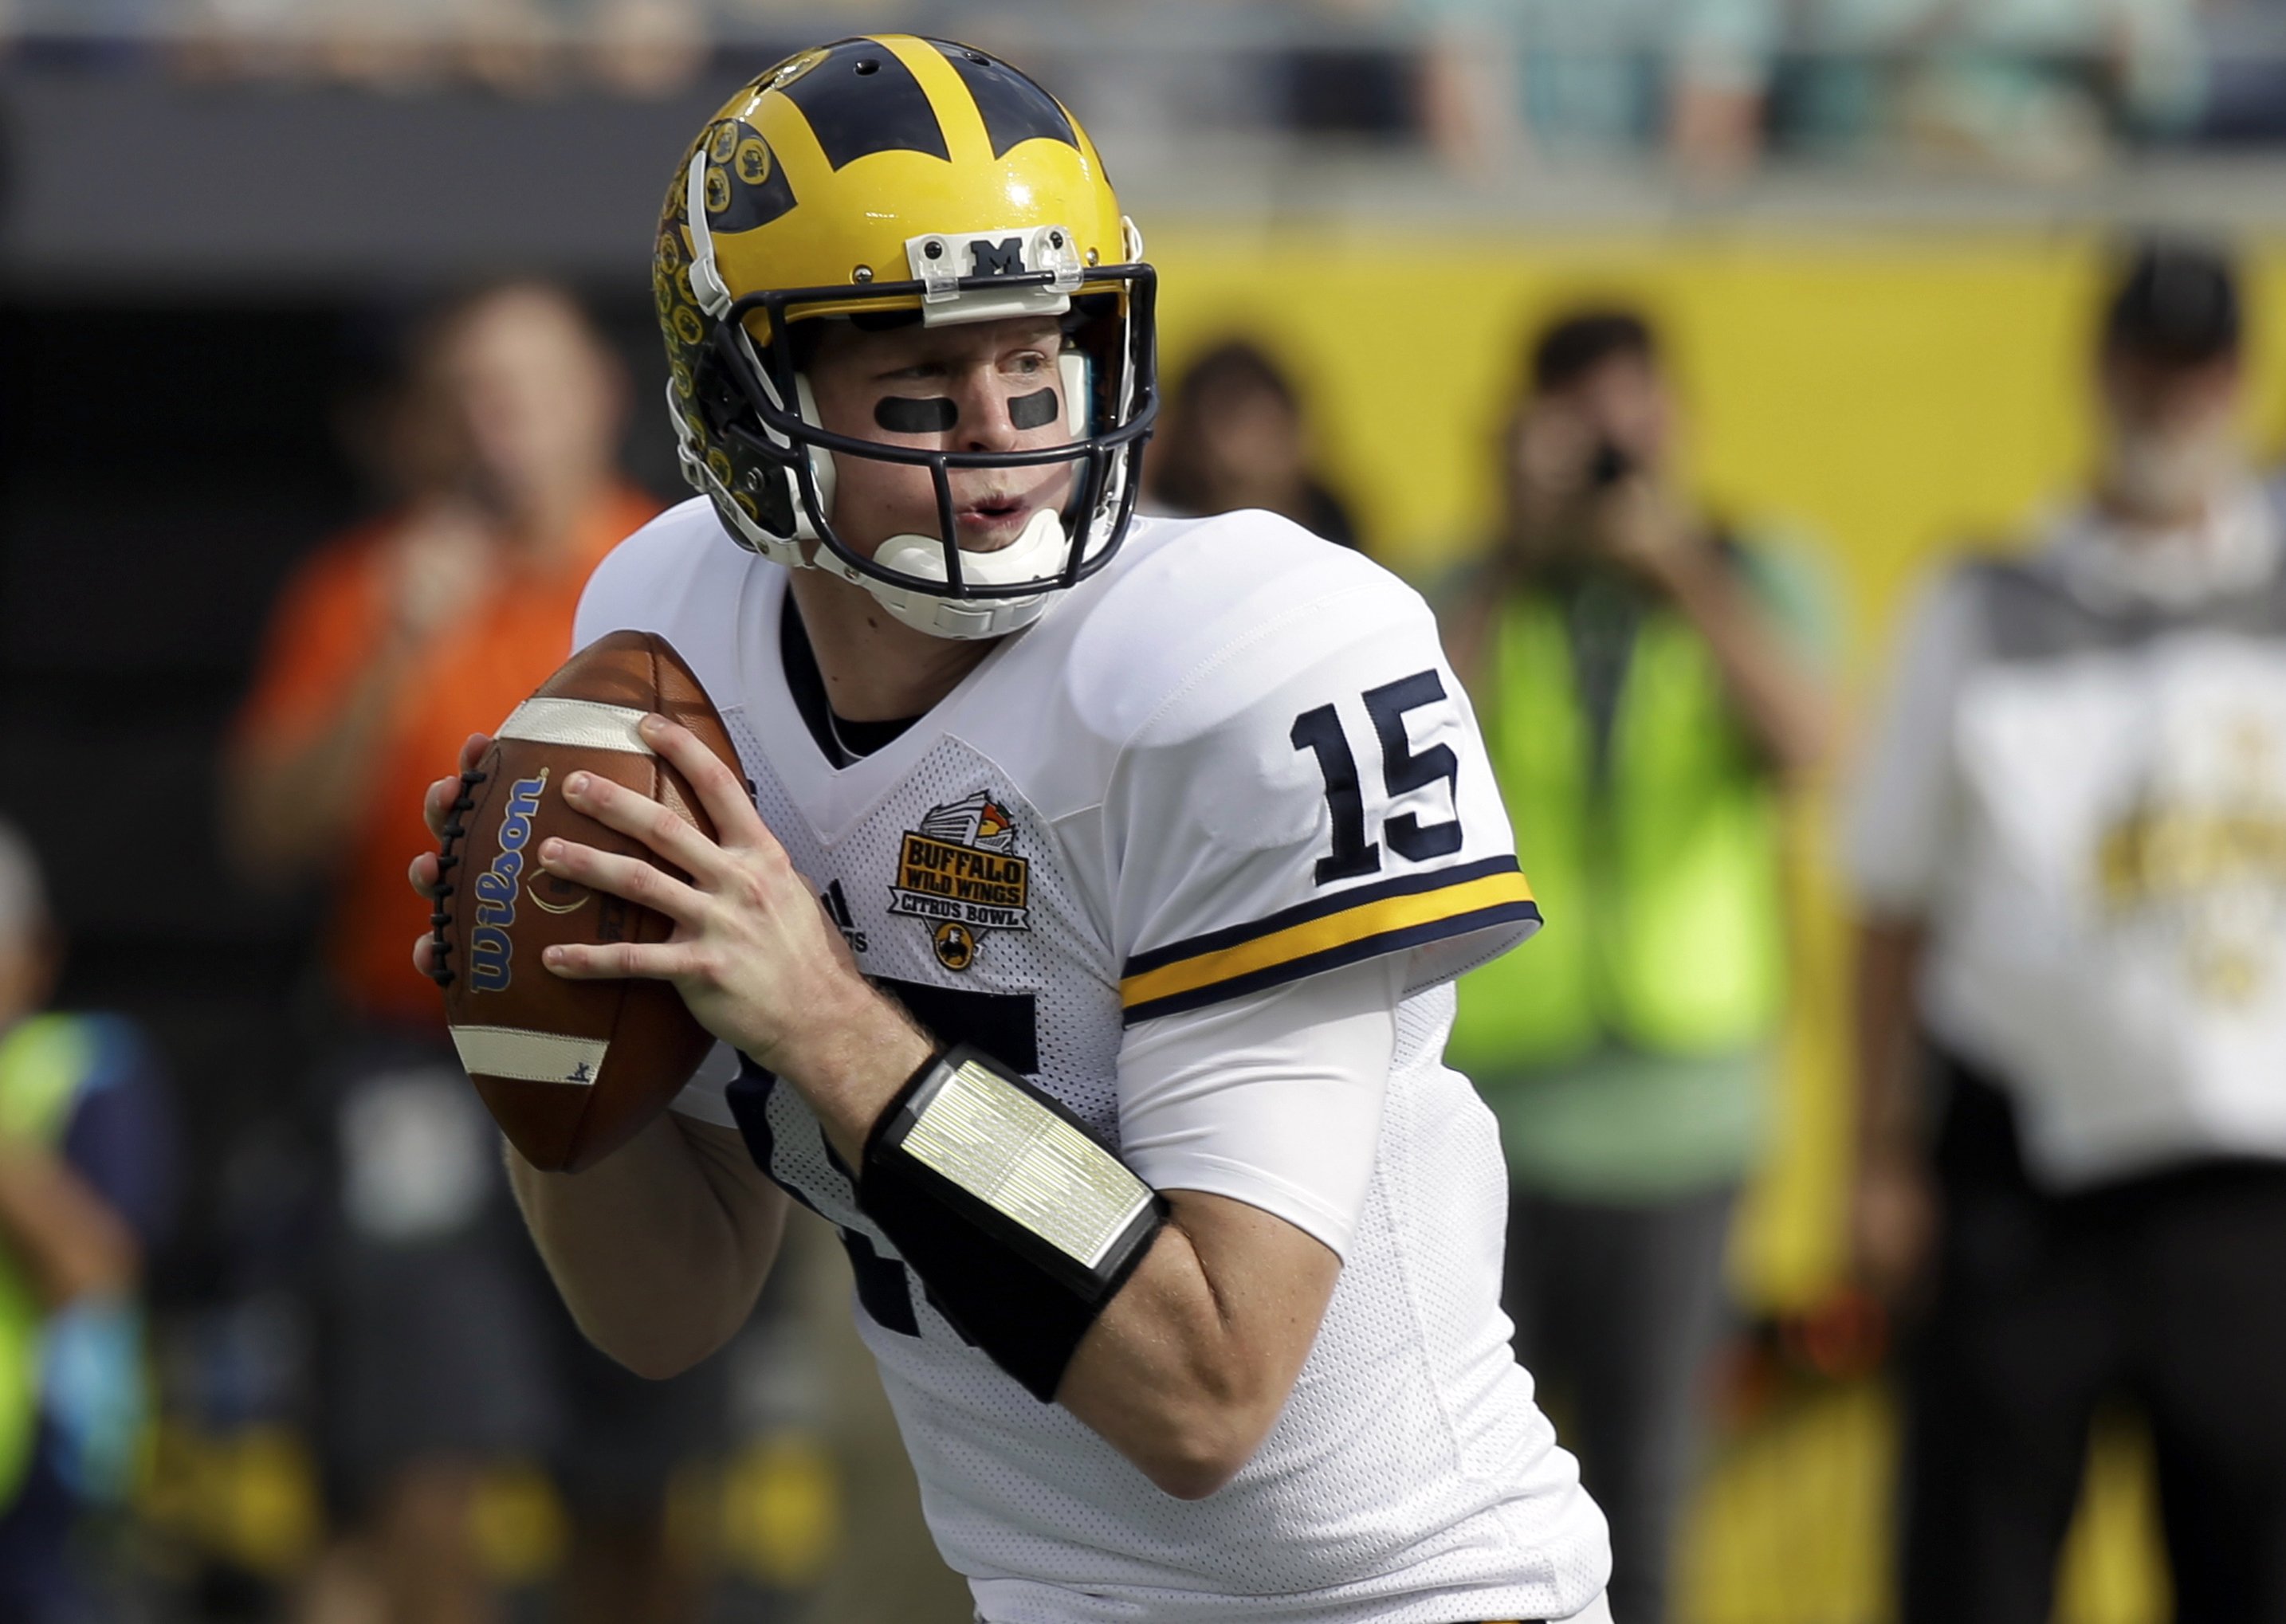 FILE - In this Jan. 1, 2016, file photo, Michigan quarterback Jake Rudock looks for a receiver during the first half of the Citrus Bowl NCAA college football game against Florida in Orlando, Fla. The former Michigan quarterback seems to have landed in a g